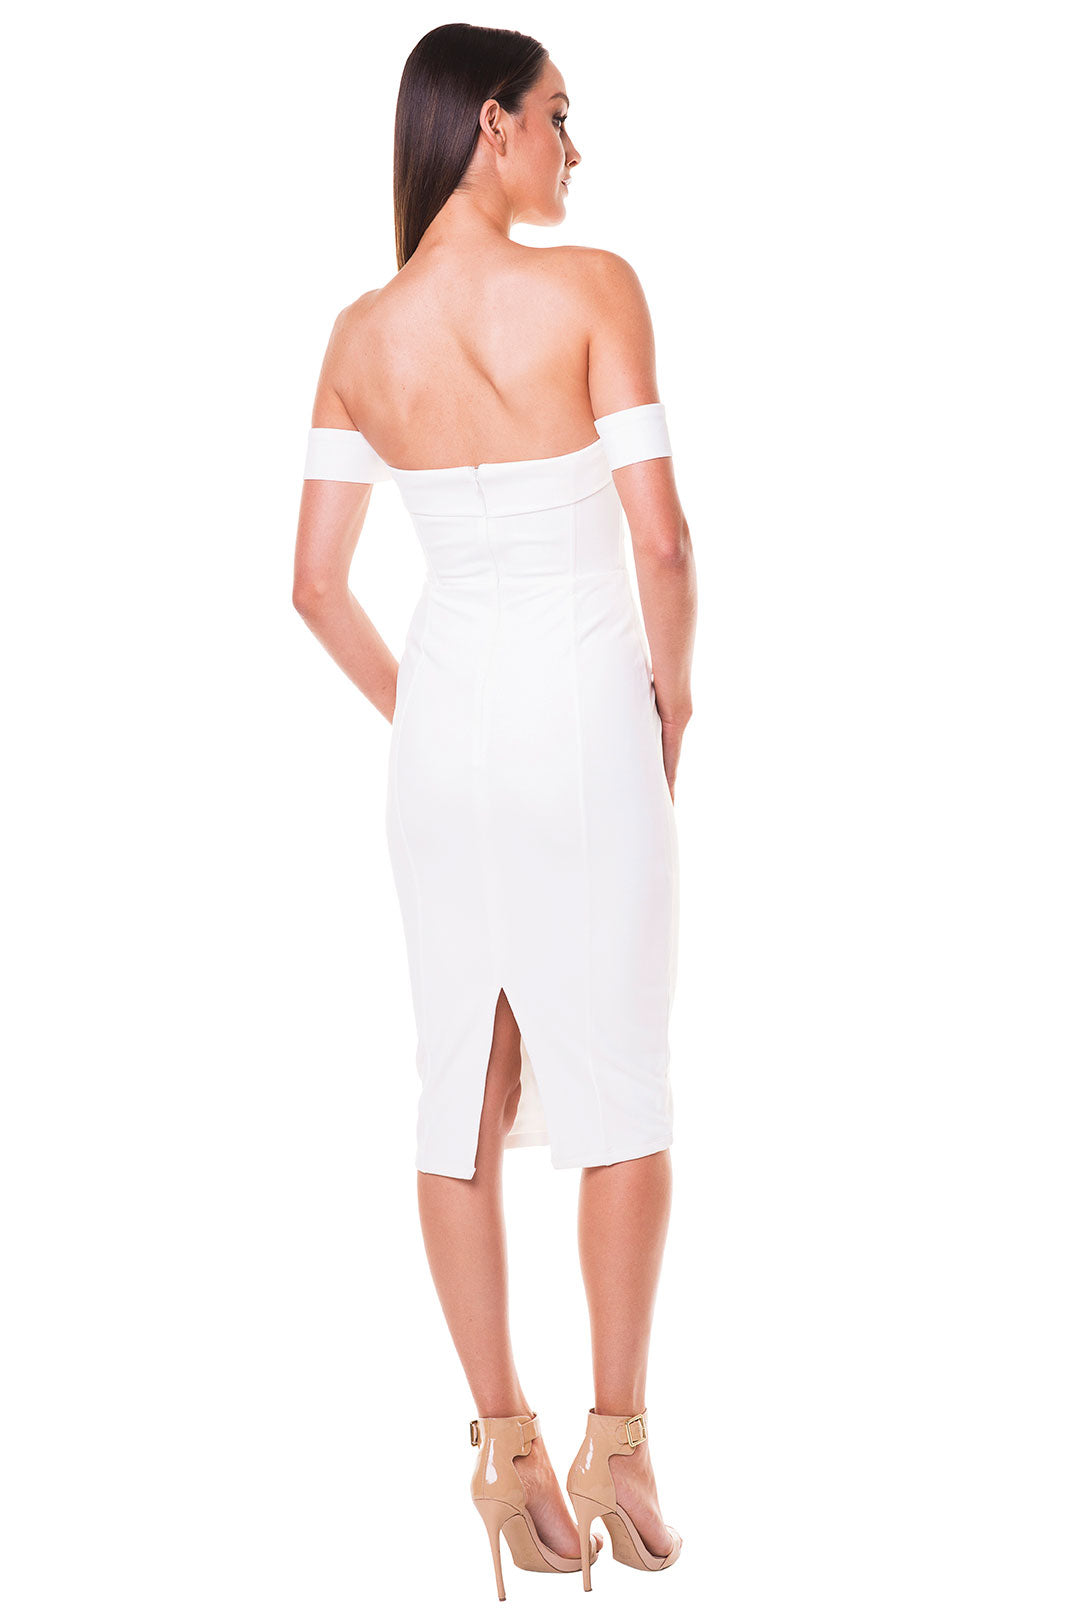 Cynthia Off-Shoulder Dress - White [SAMPLE SALE]